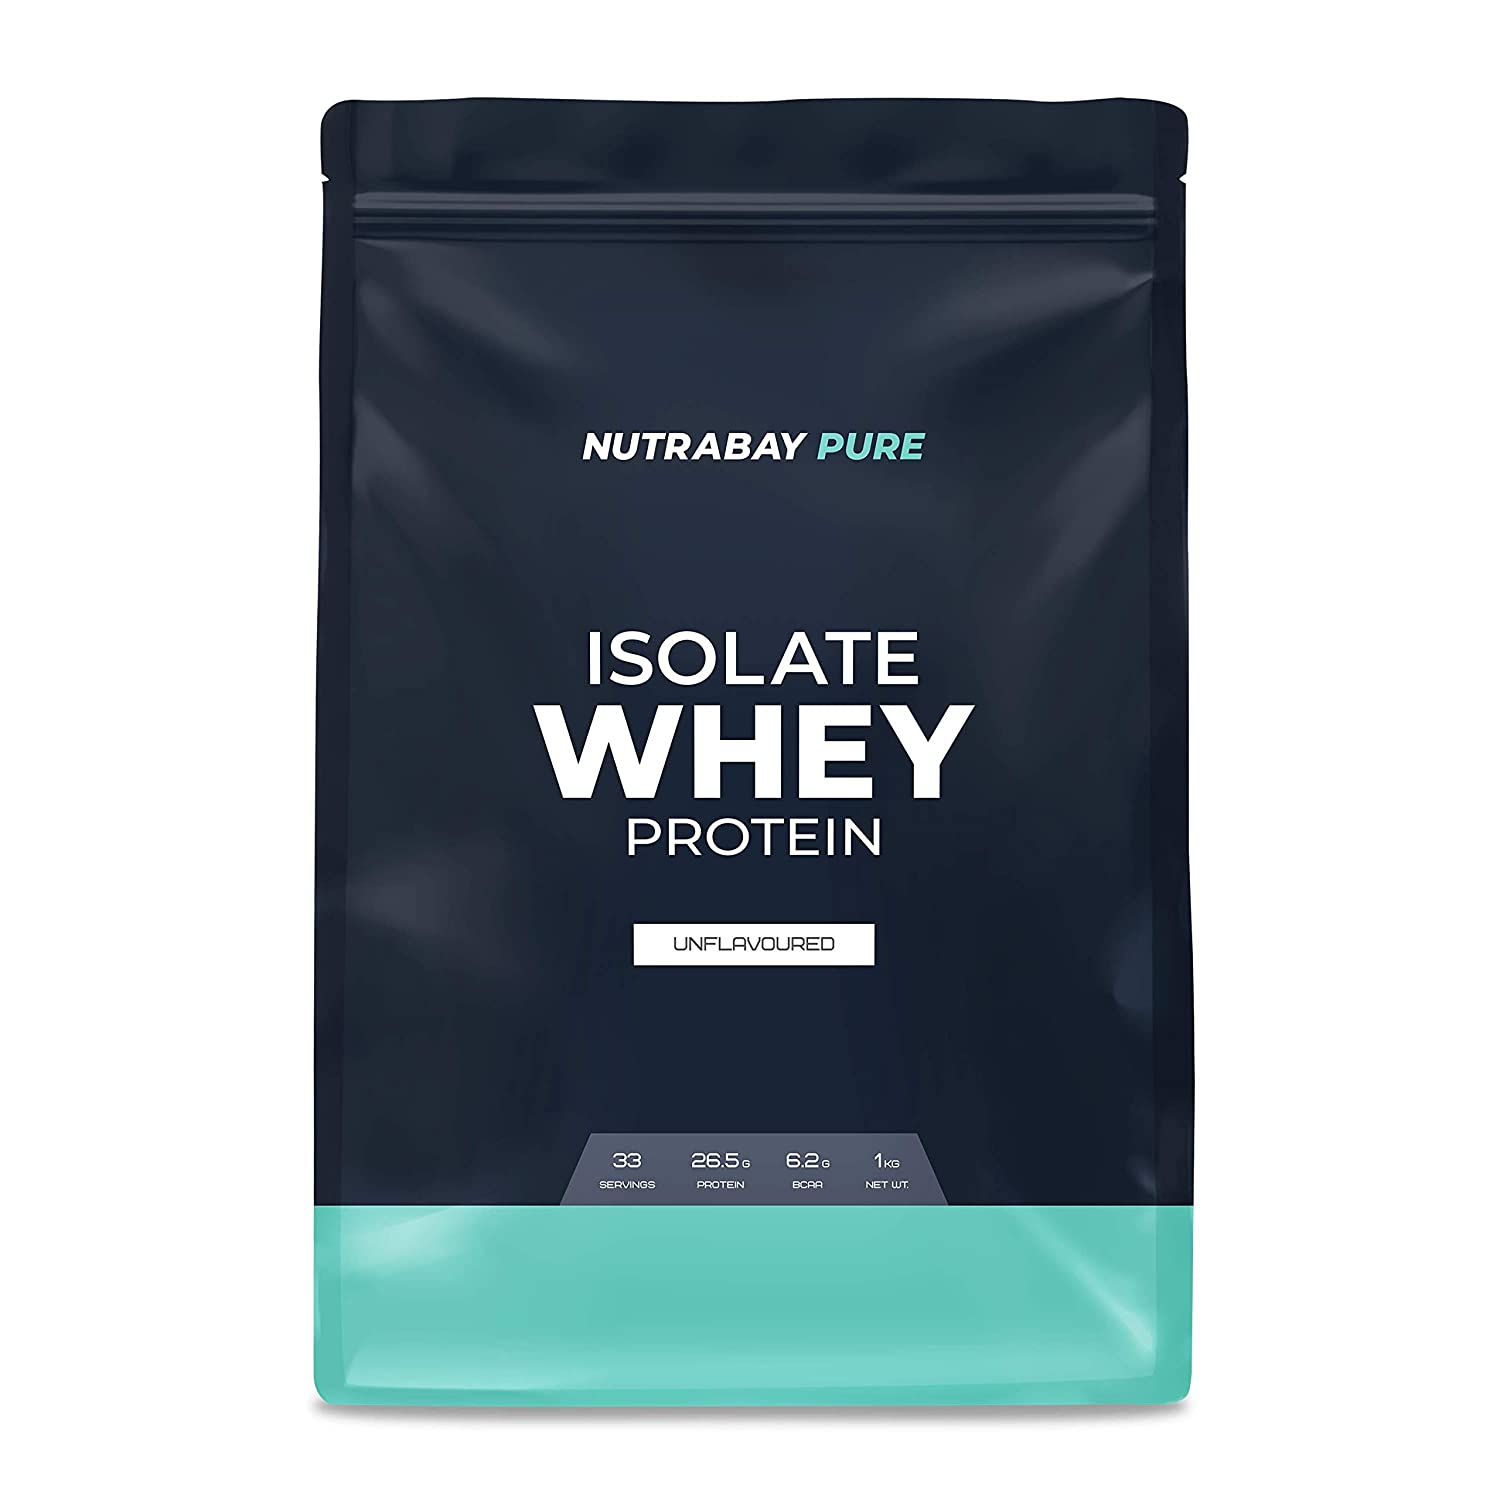 Nutrabay Affordable Whey Protein Isolate Review